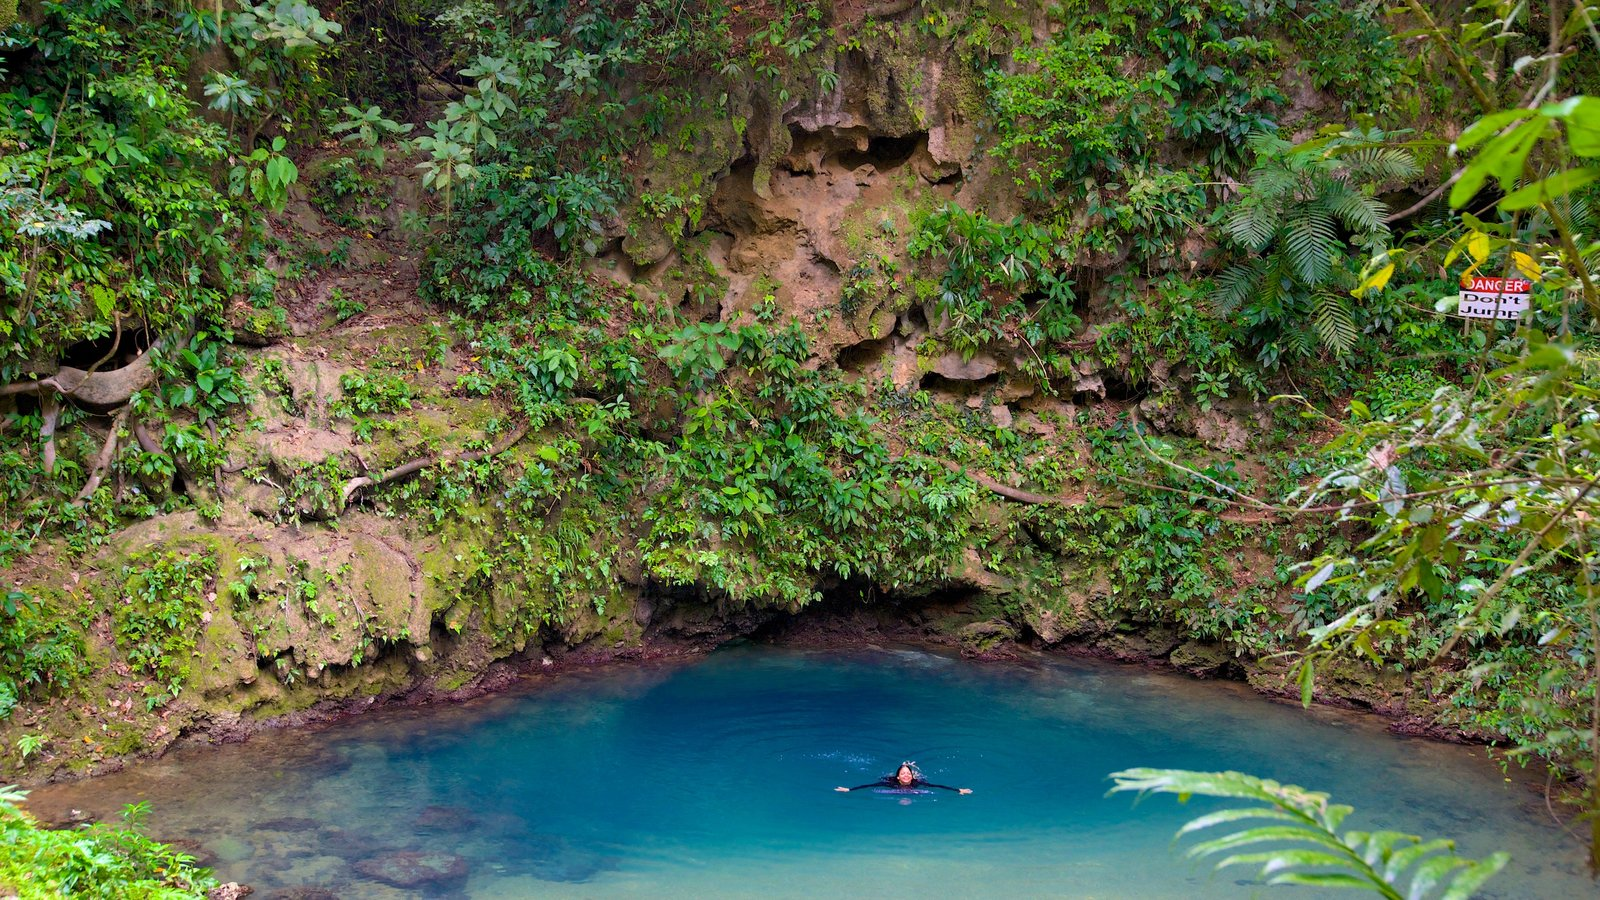 Blue Hole National Park featuring tranquil scenes, swimming and a lake or waterhole